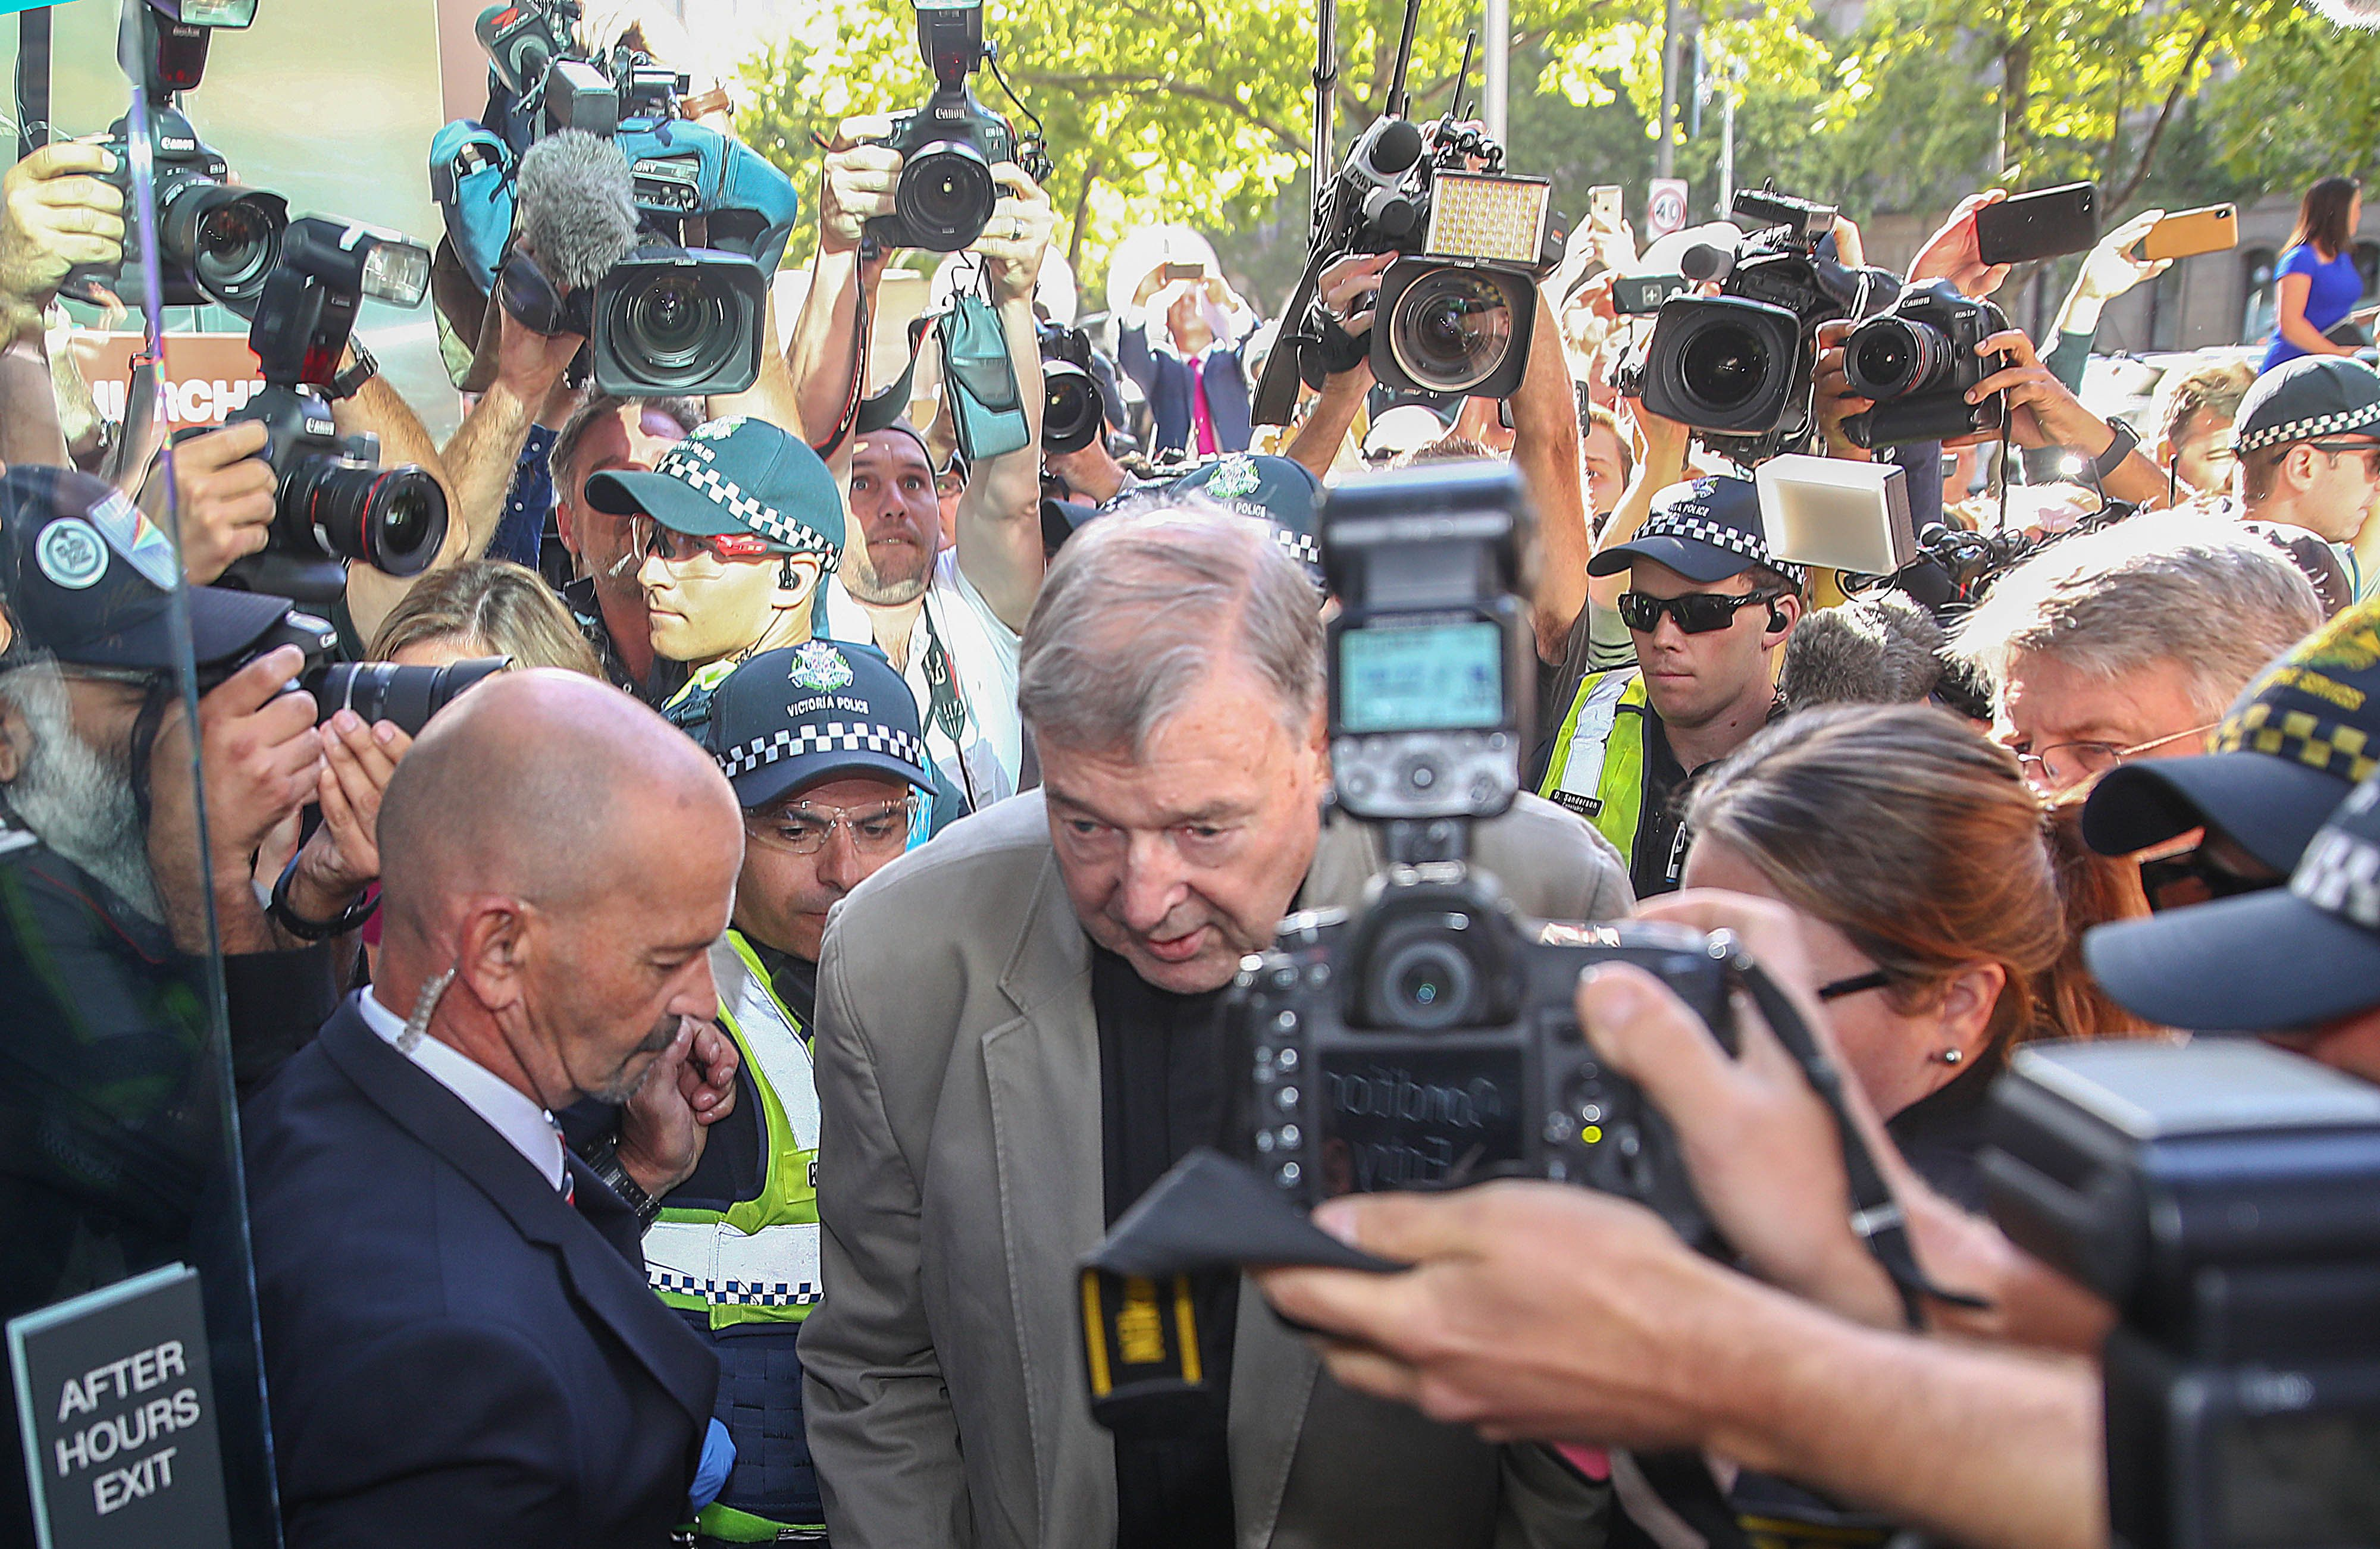 MELBOURNE, AUSTRALIA - FEBRUARY 27: George Pell arrives at Melbourne County Court on February 27, 2019 in Melbourne, Australia. Pell, once the third most powerful man in the Vatican and Australia's most senior Catholic, was found guilty on 11 December in Melbourne's county court, but the result was subject to a suppression order and was only able to be reported from Tuesday. The jury was unanimous in their verdict, finding Pell guilty on five counts of child sexual assault in December 1996 and early 1997 at St Patrick's Cathedral.  (Photo by Scott Barbour/Getty Images)